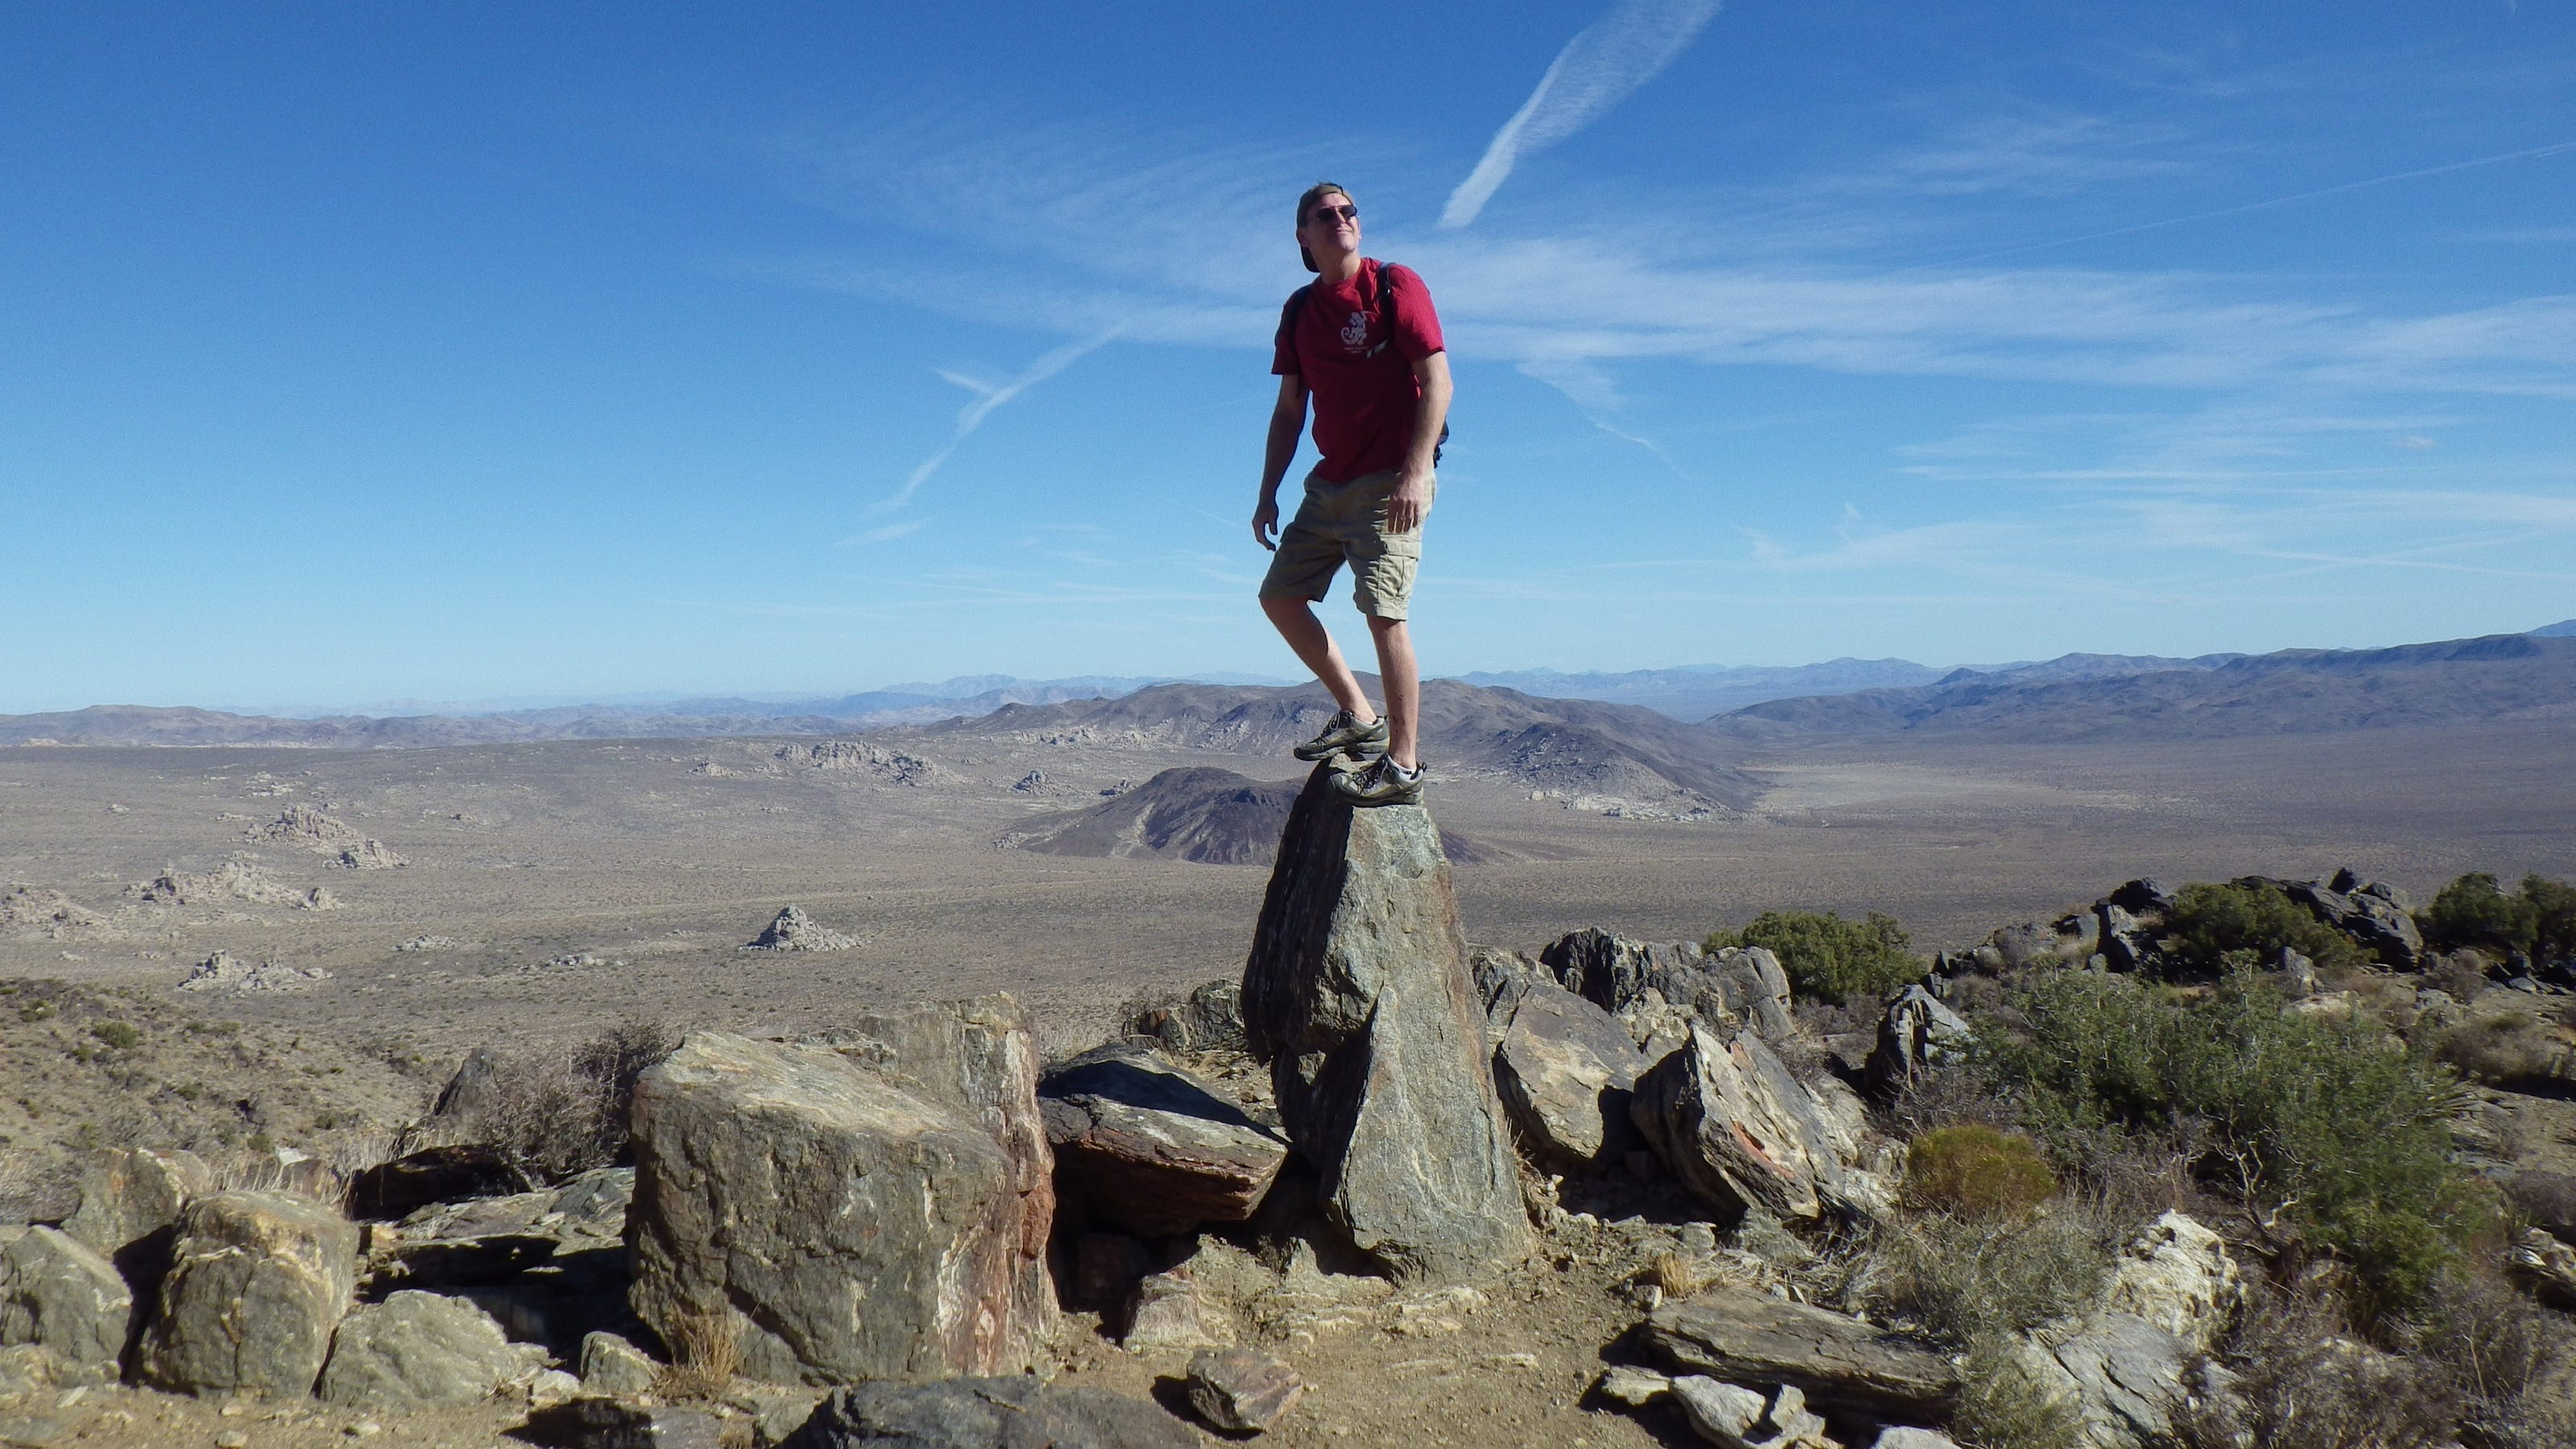 Desert hikes offer unexpected health benefits